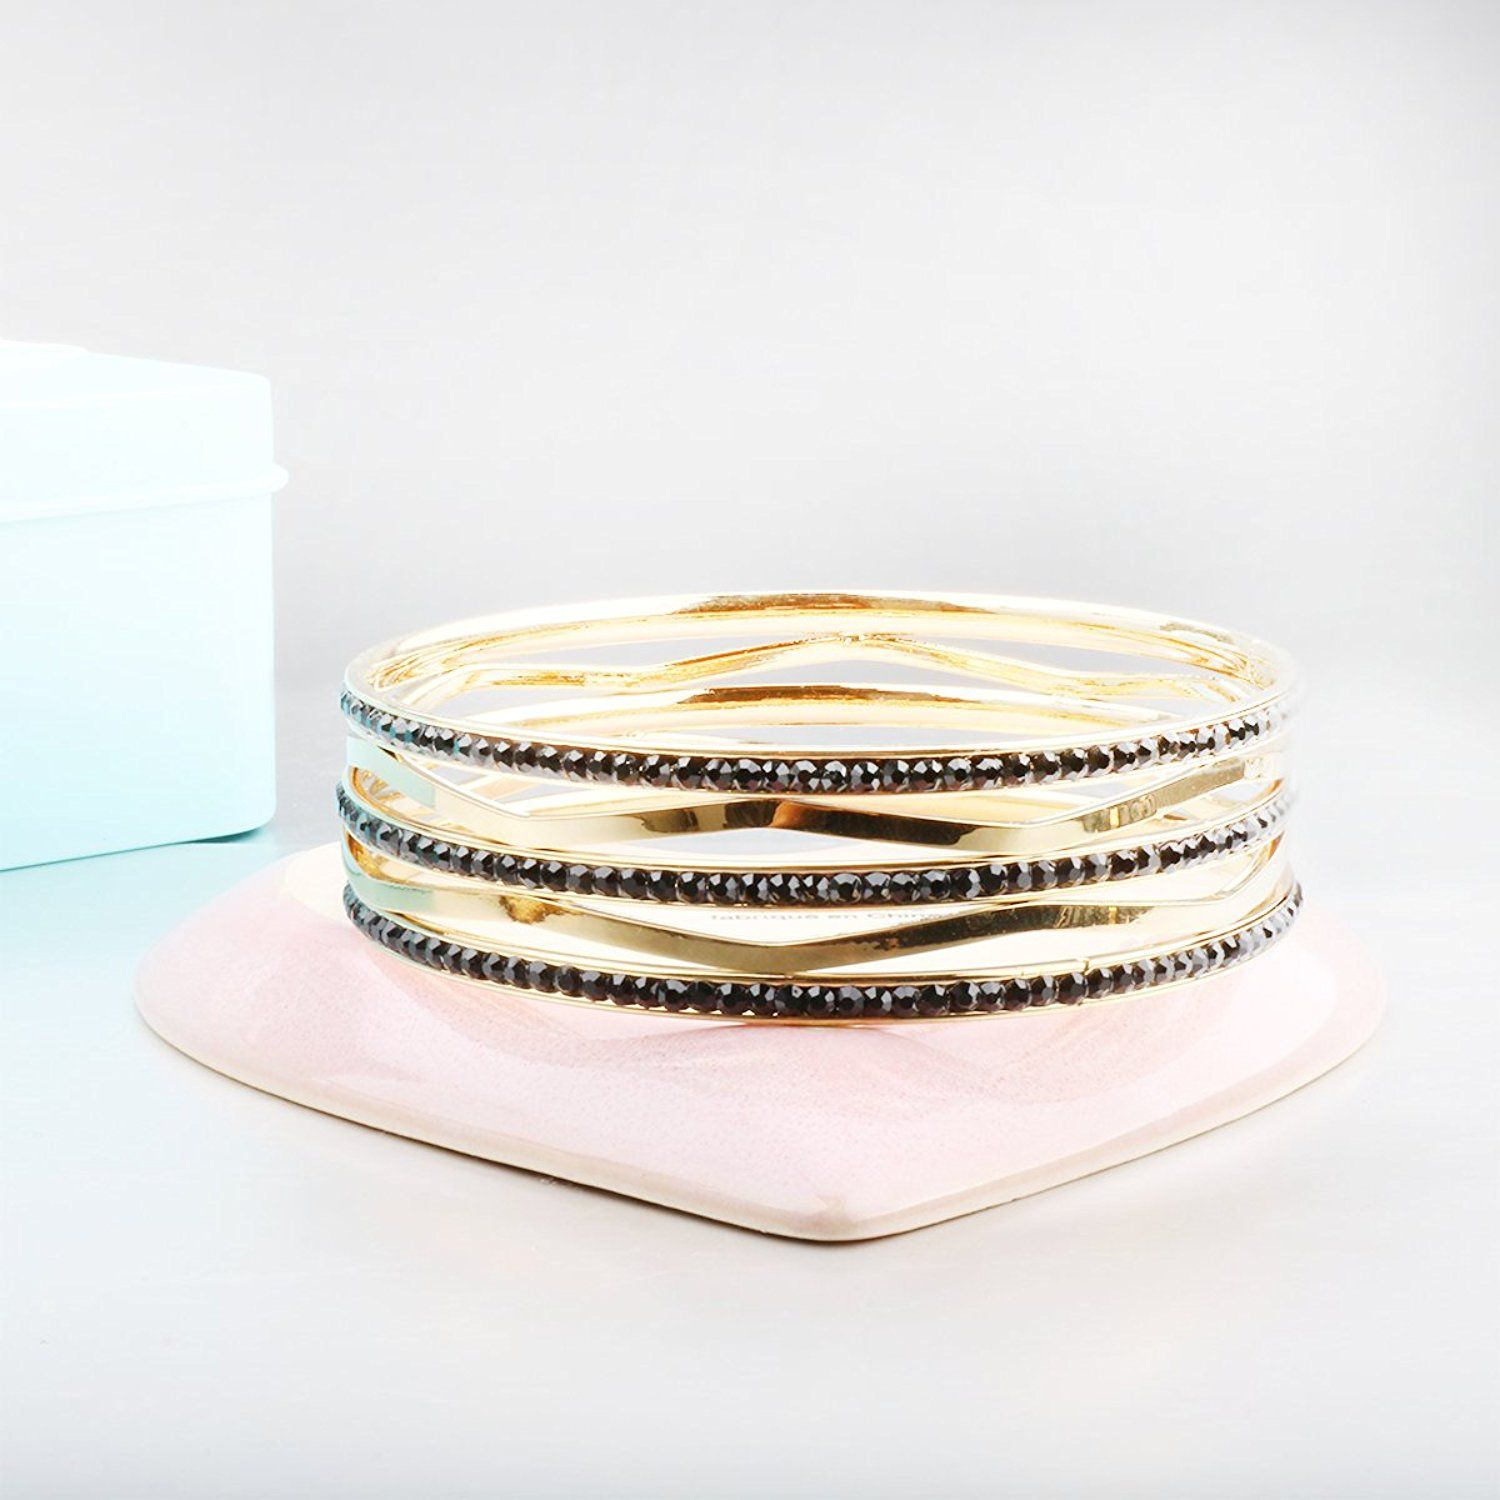 Carfeny stainless steel jewelry wide gold with many crystal bangle